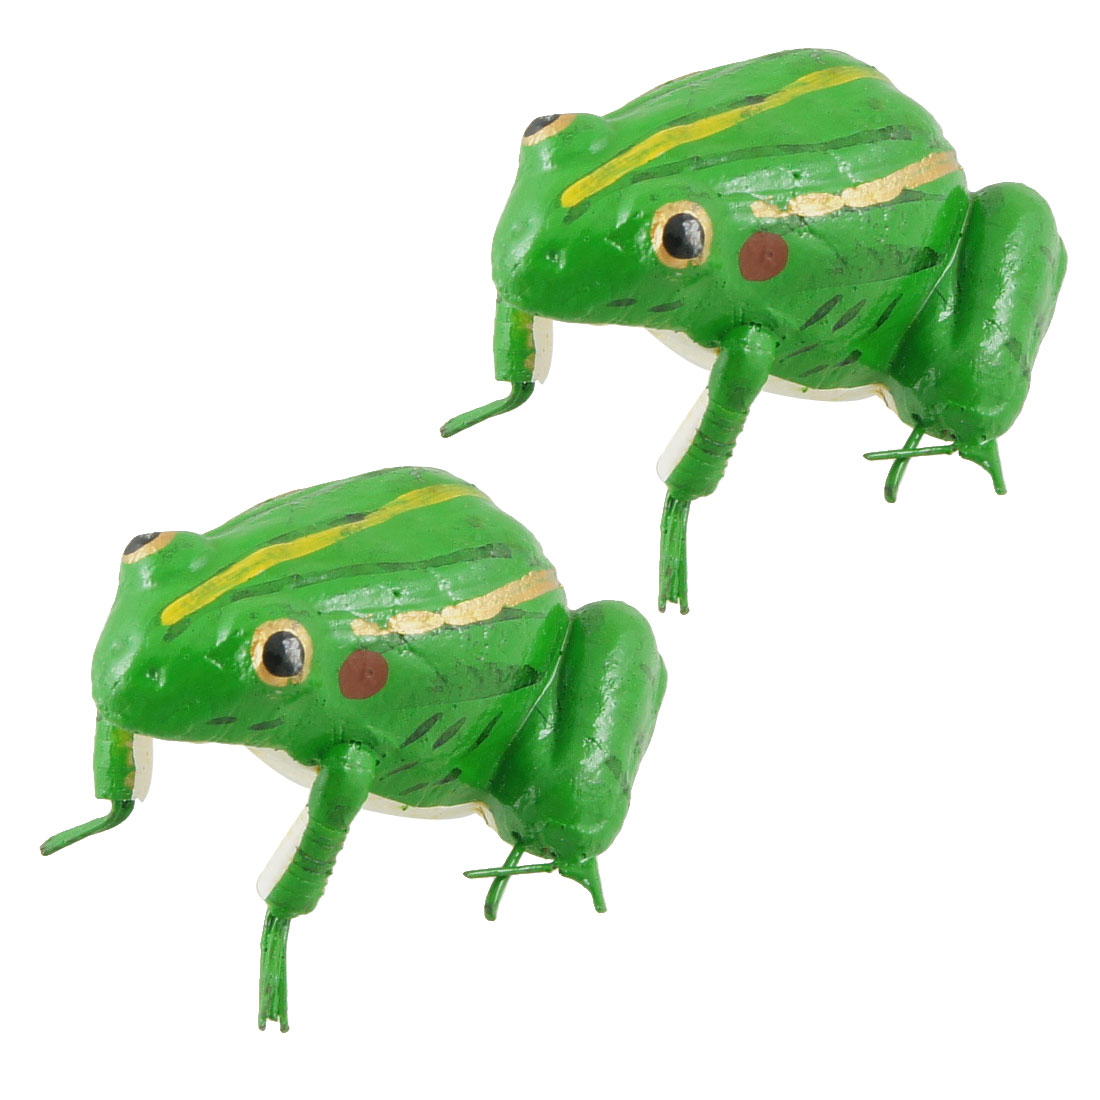 Fridge Refrigerator Ornament Frog Shape Magnetic Sticker Green 2 Pcs